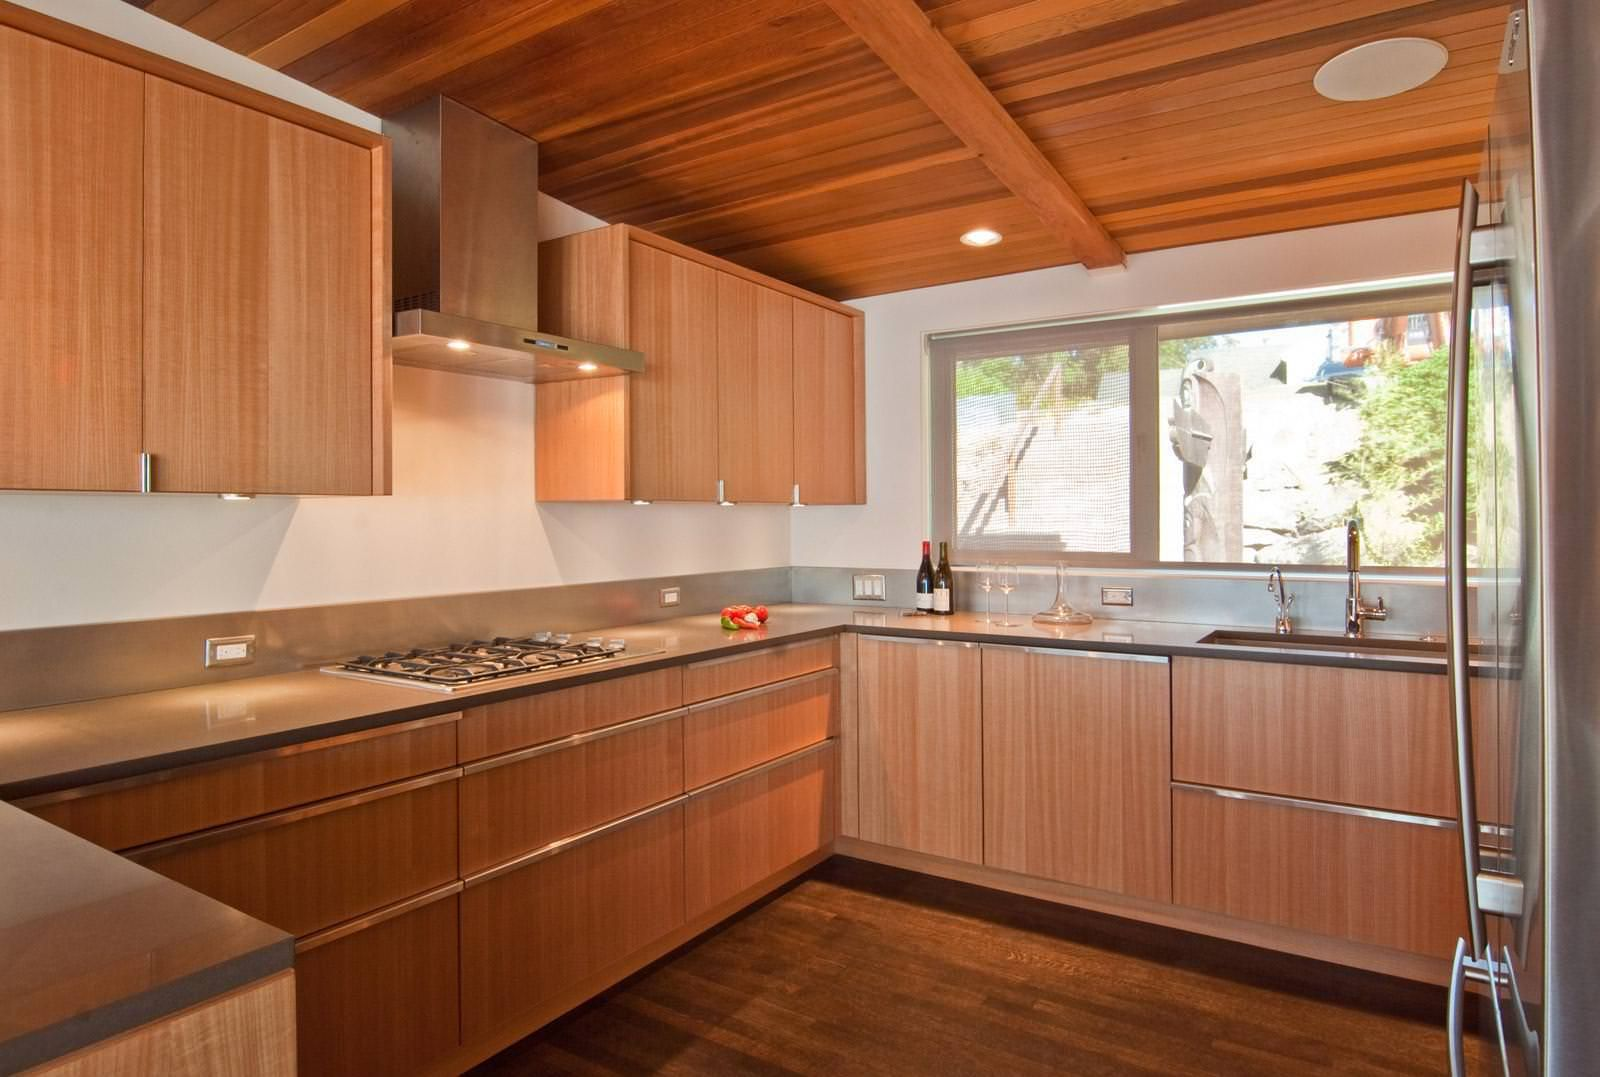 Bamboo Kitchen Cabinets The Cost Reviews In 2020 Bamboo Kitchen Cabinets Custom Kitchen Cabinets Luxury Kitchen Cabinets